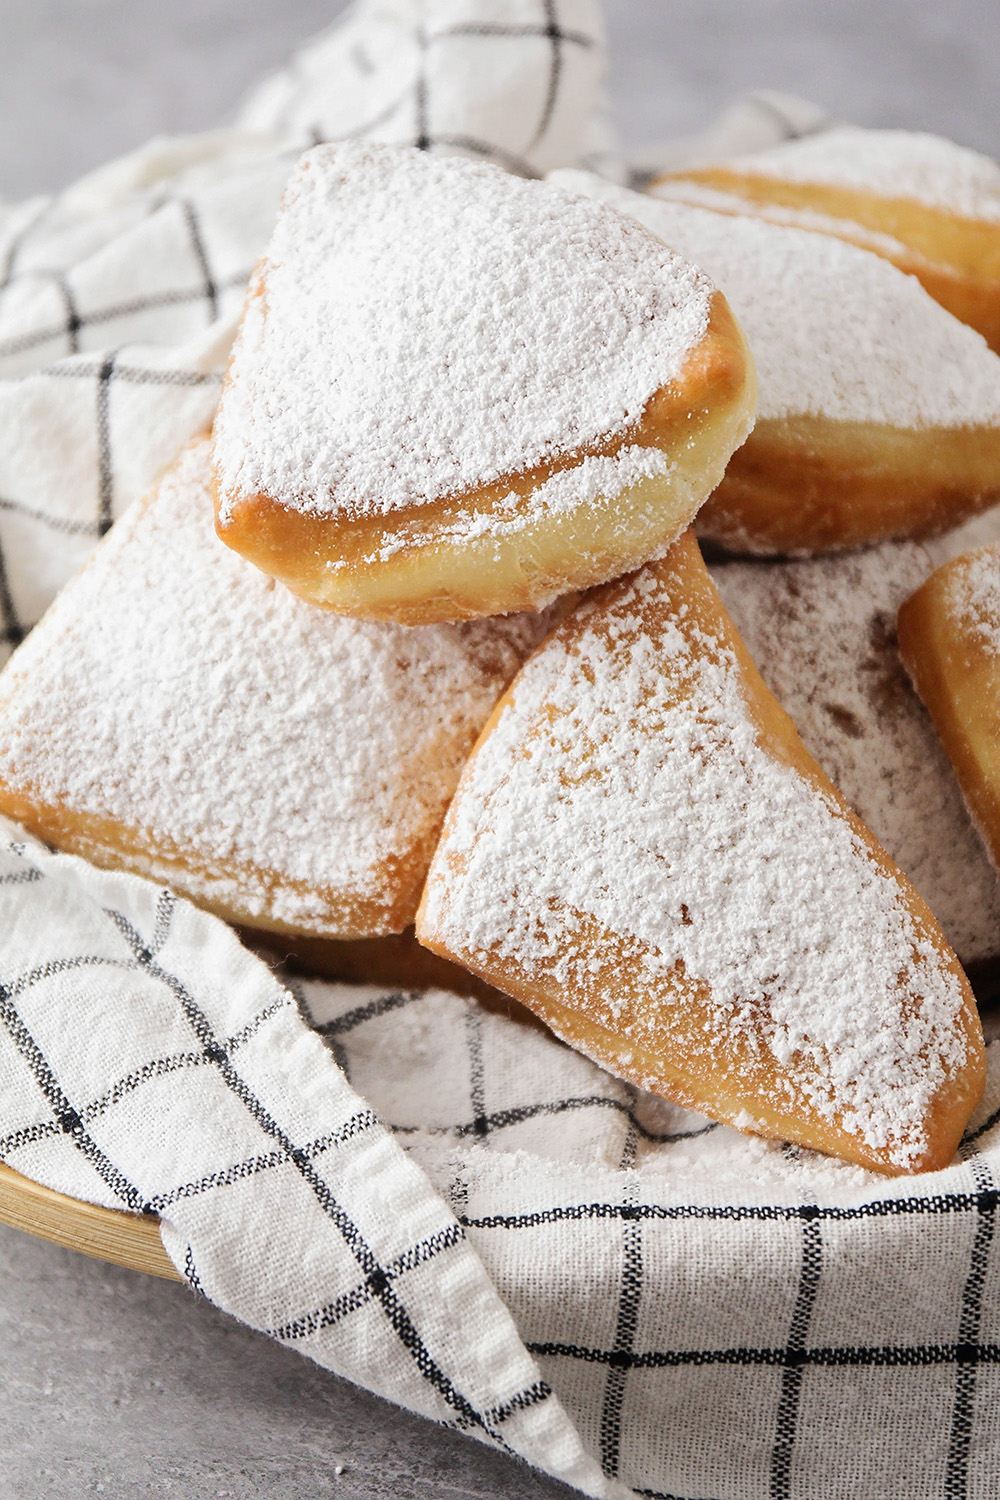 These easy homemade beignets are absolutely divine! They're light and fluffy, with the perfect amount of sweetness. So delicious and easy to make!